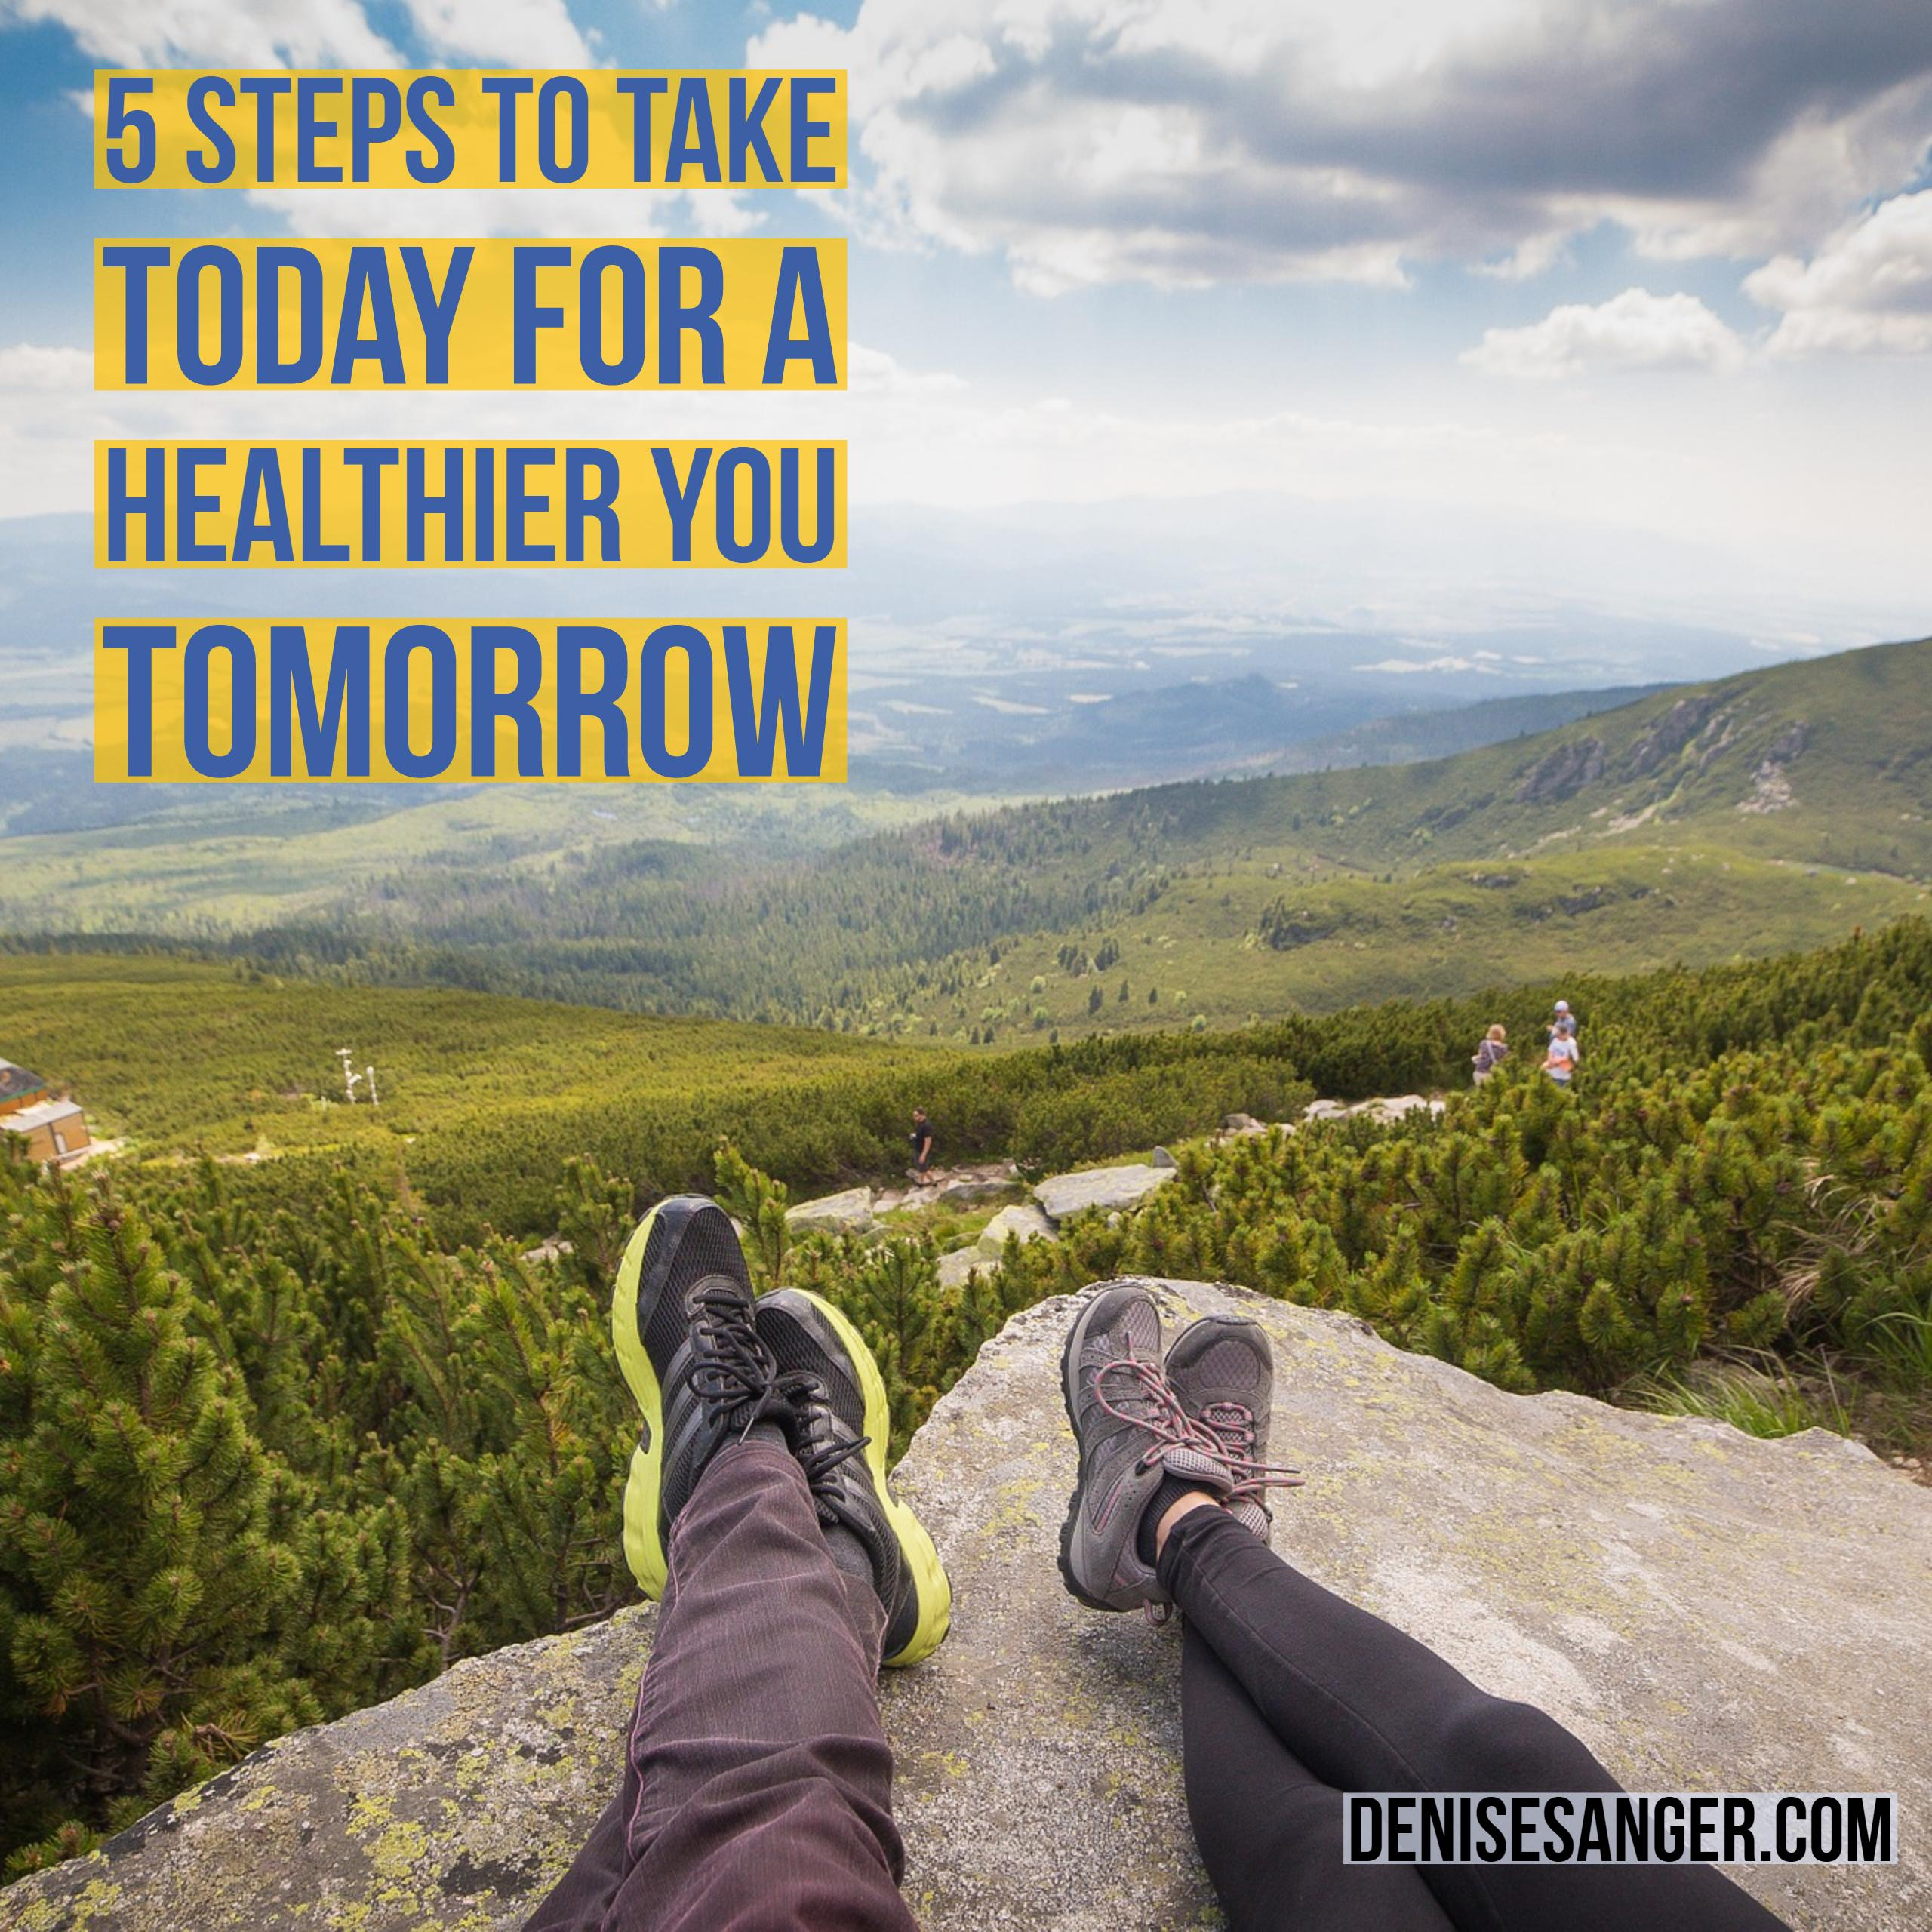 Healthy Living: 5 Steps To Take Today